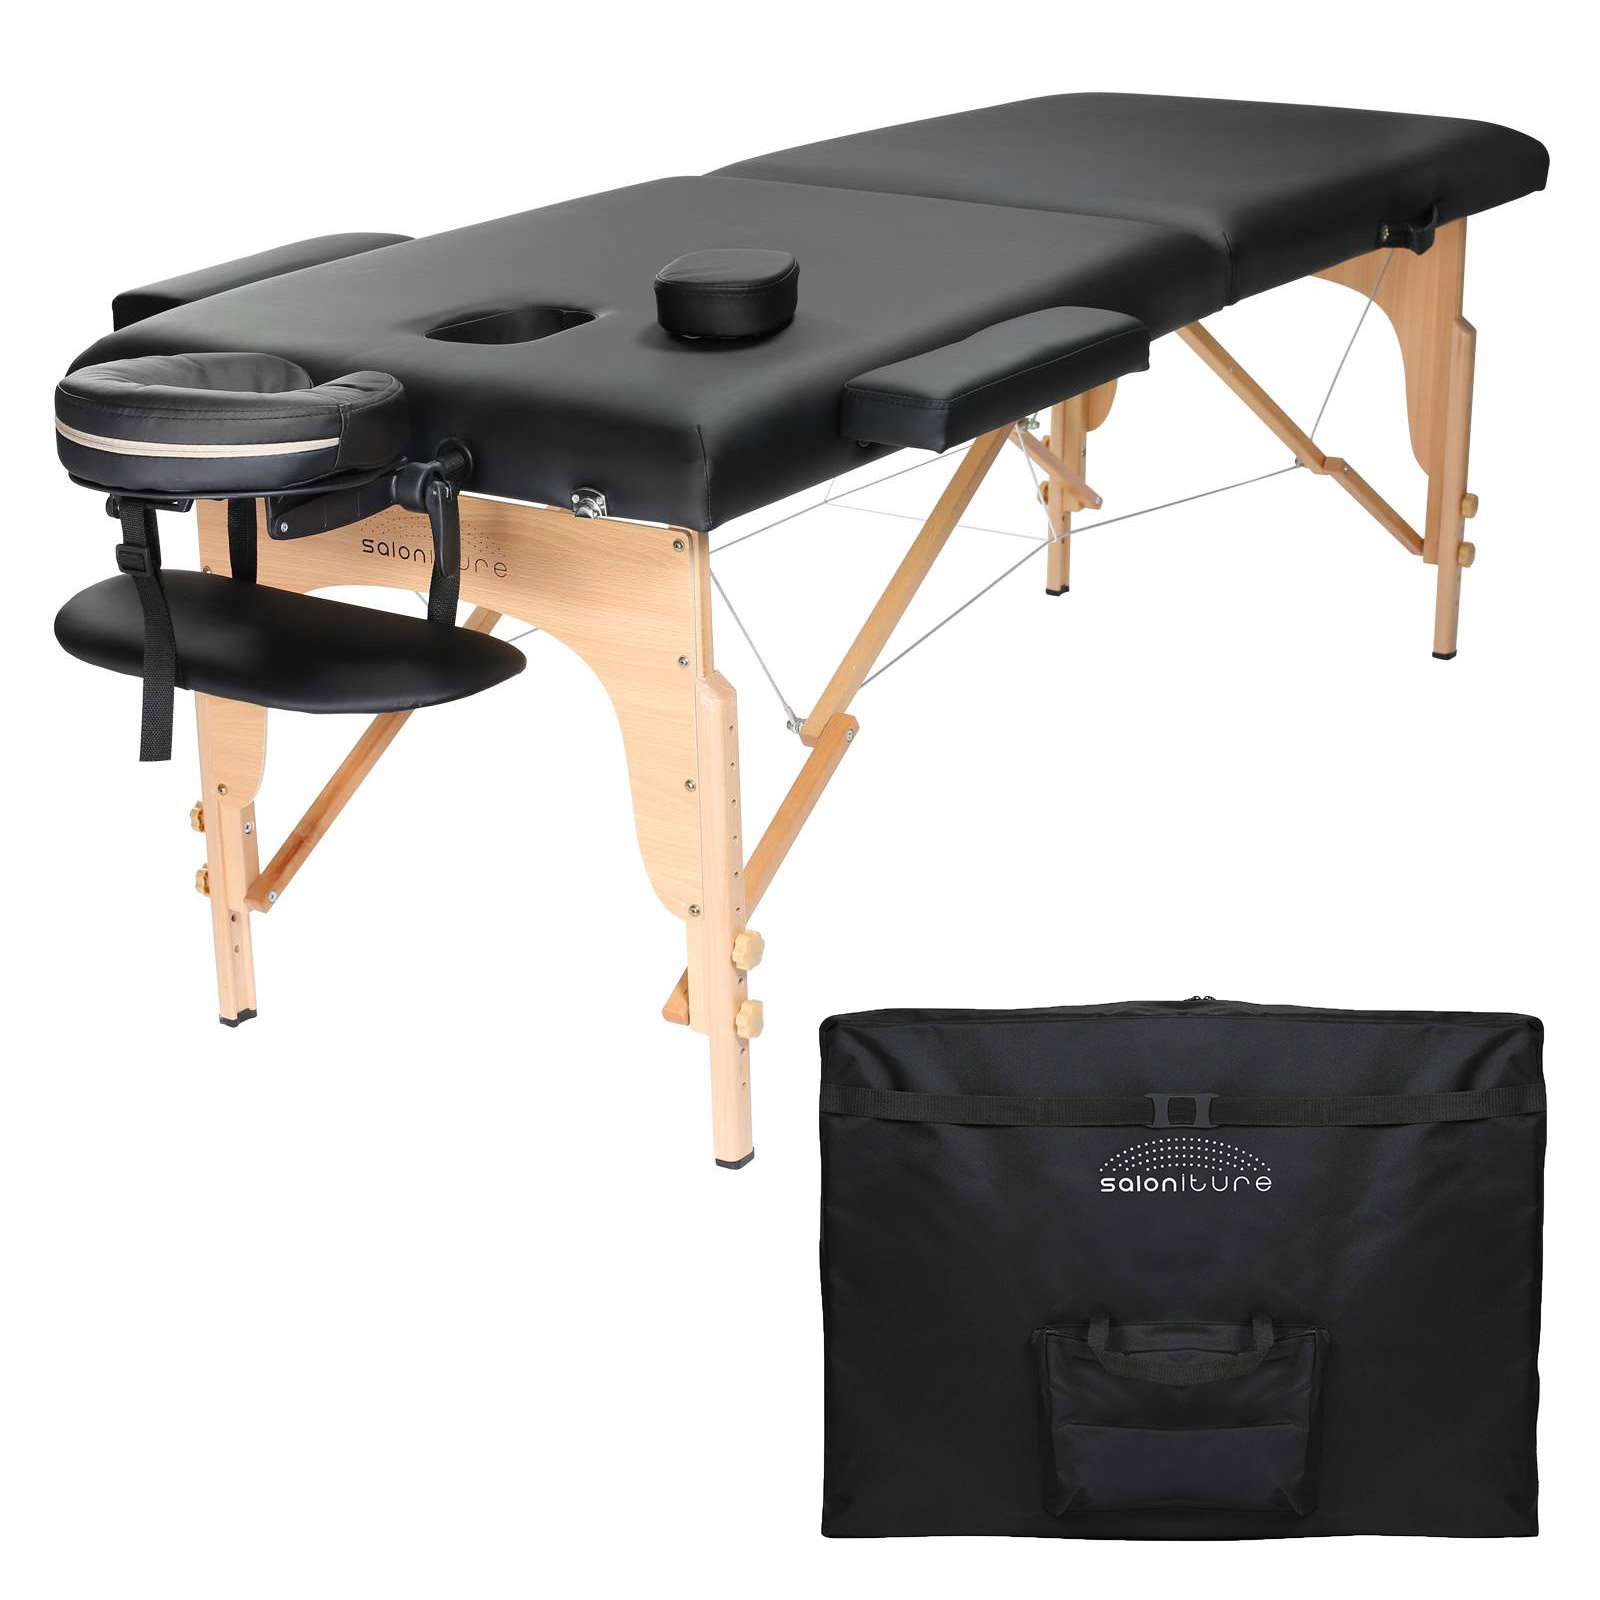 Saloniture Professional Portable Folding Massage Table with Carrying Case - Black by Saloniture